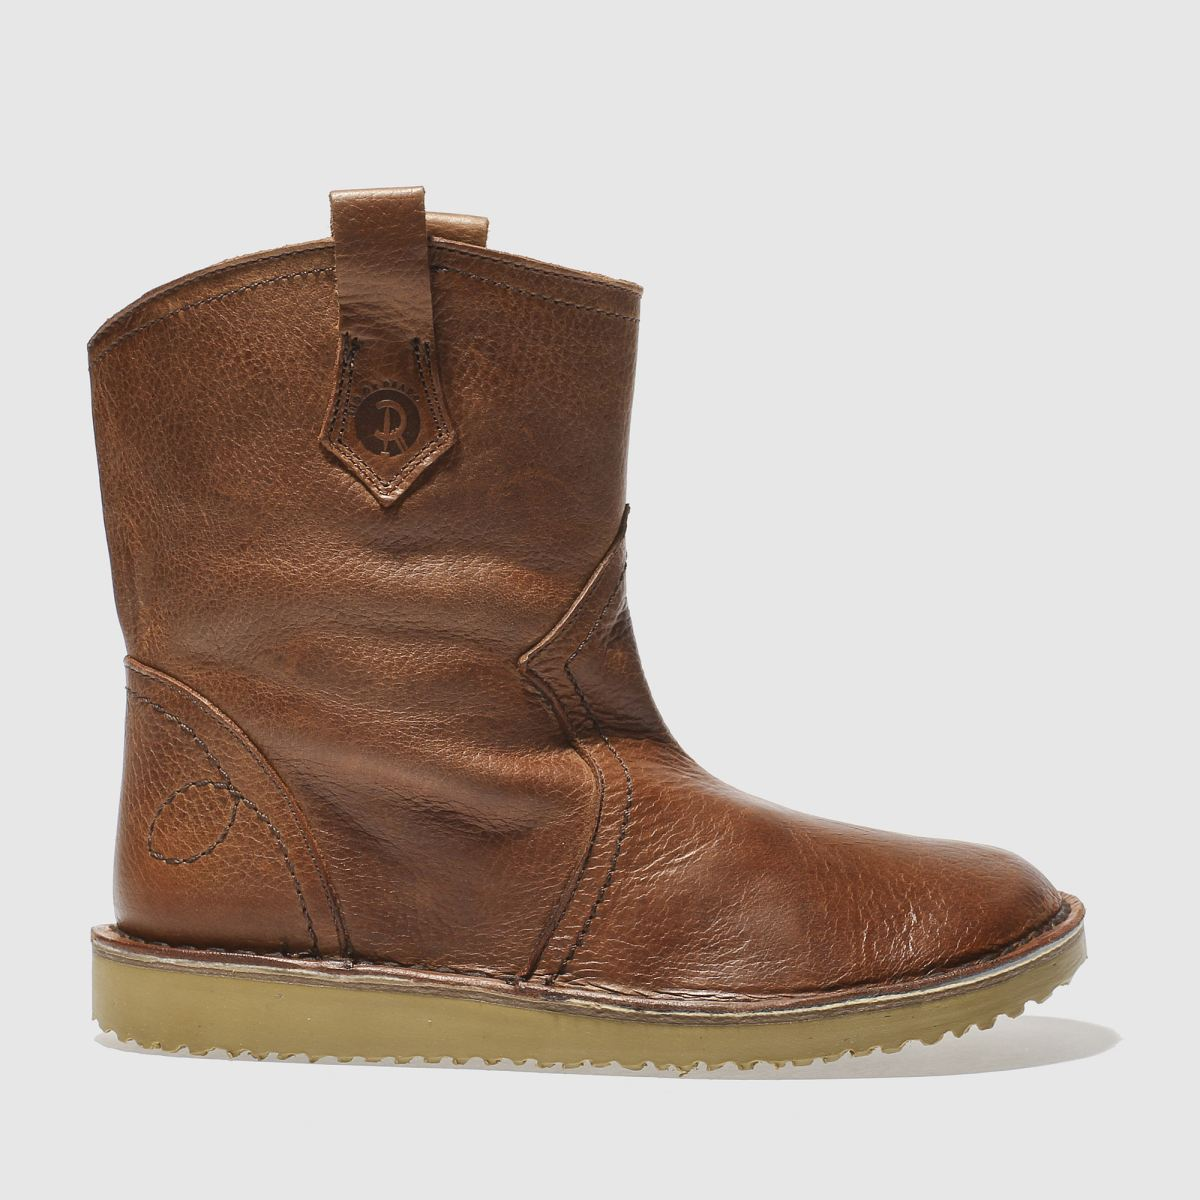 red or dead brown georgetta boots